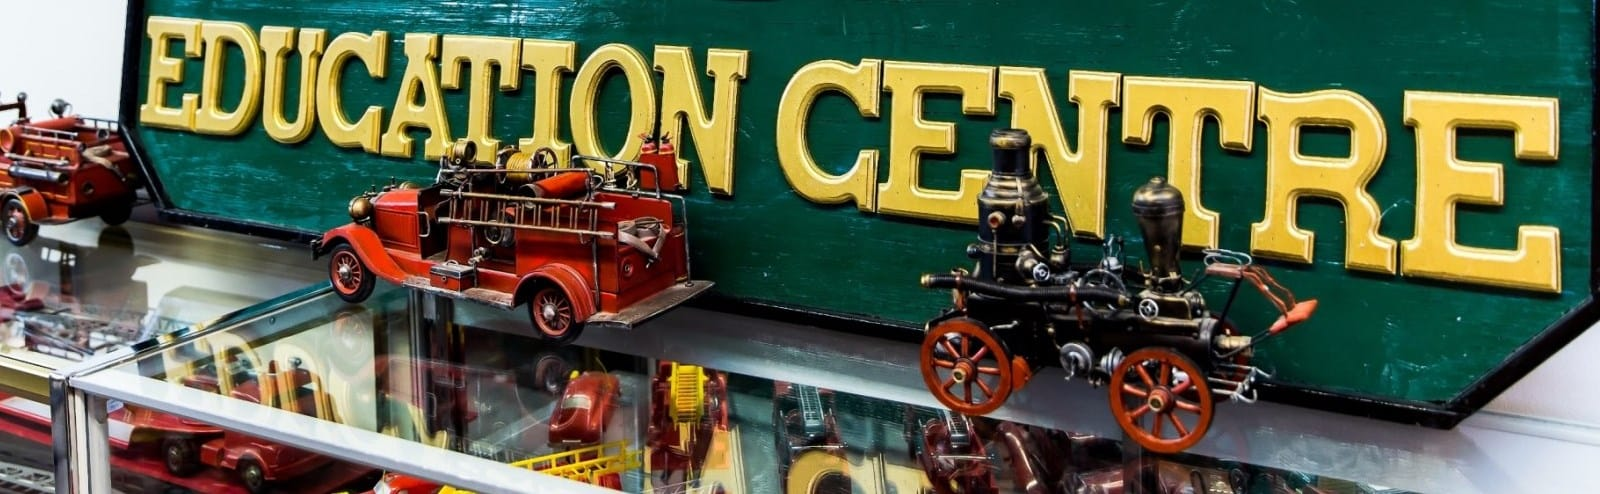 Toy fire trucks